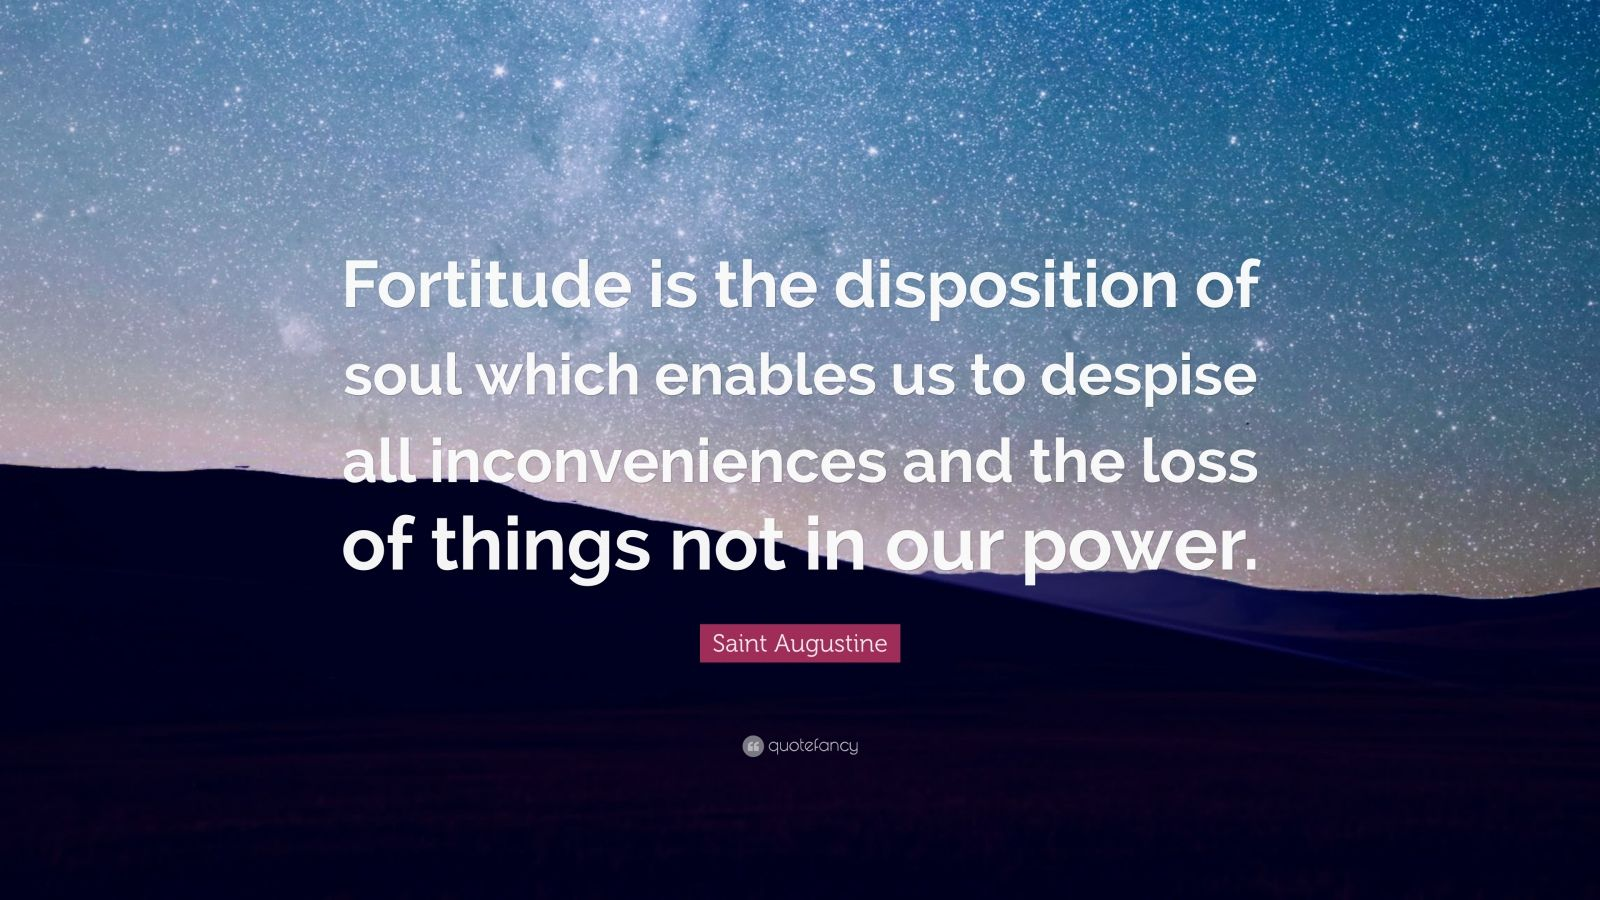 """Saint Augustine Quote: """"Fortitude is the disposition of soul which enables us to despise all inconveniences and the loss of things not in our power."""""""